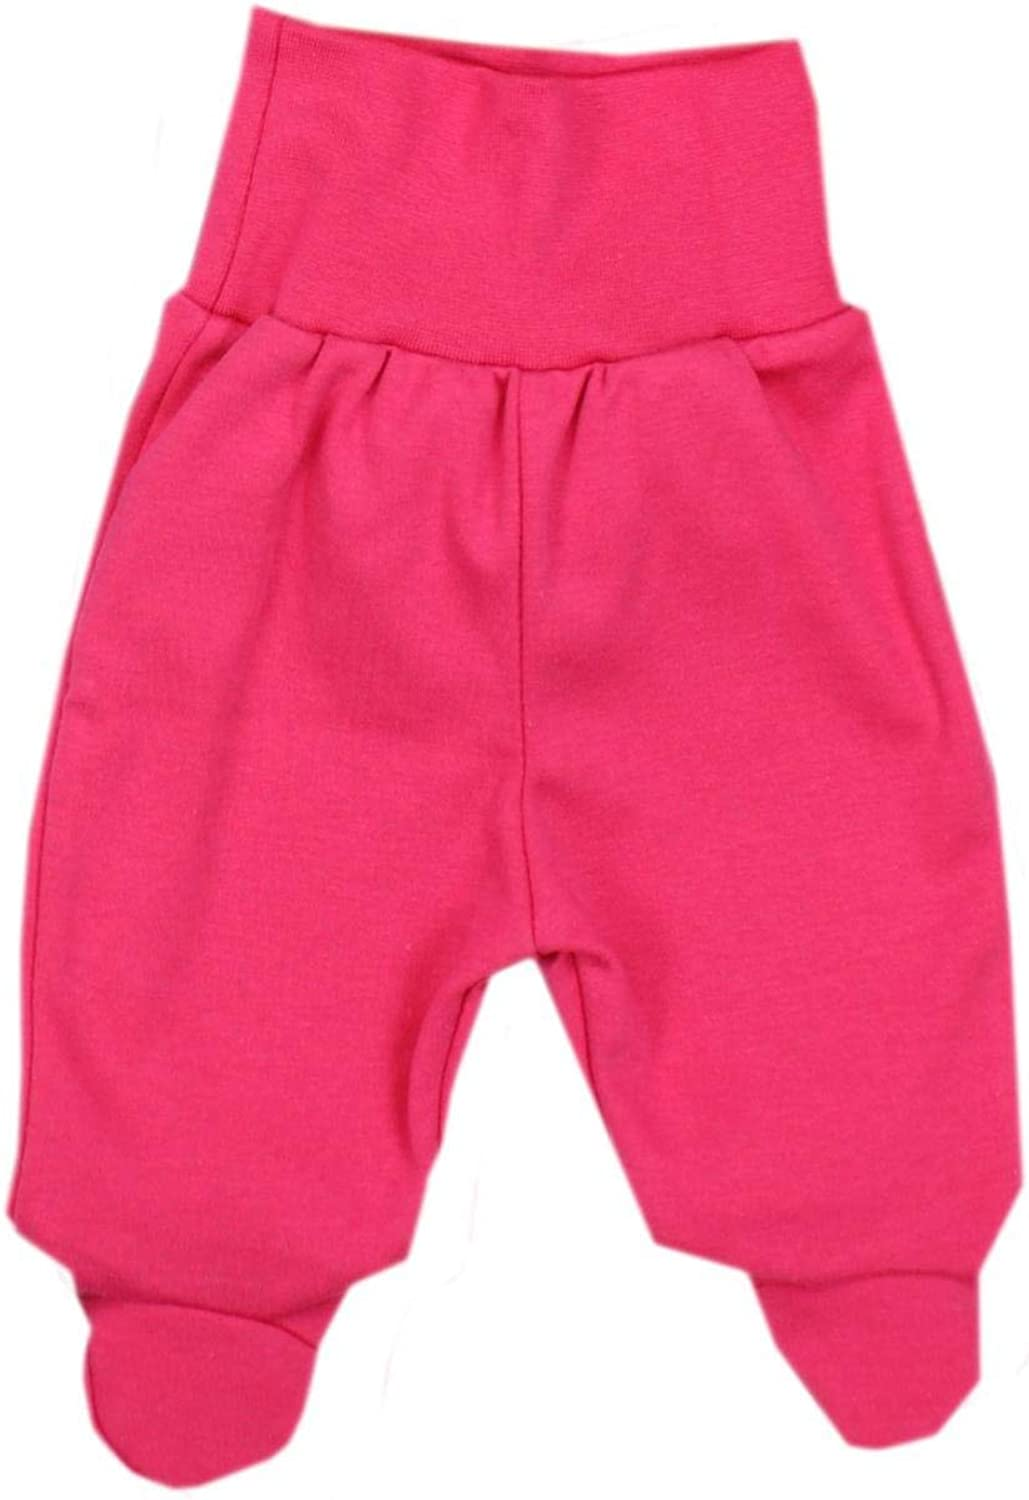 TupTam Baby Trousers with Feet Pack of 5